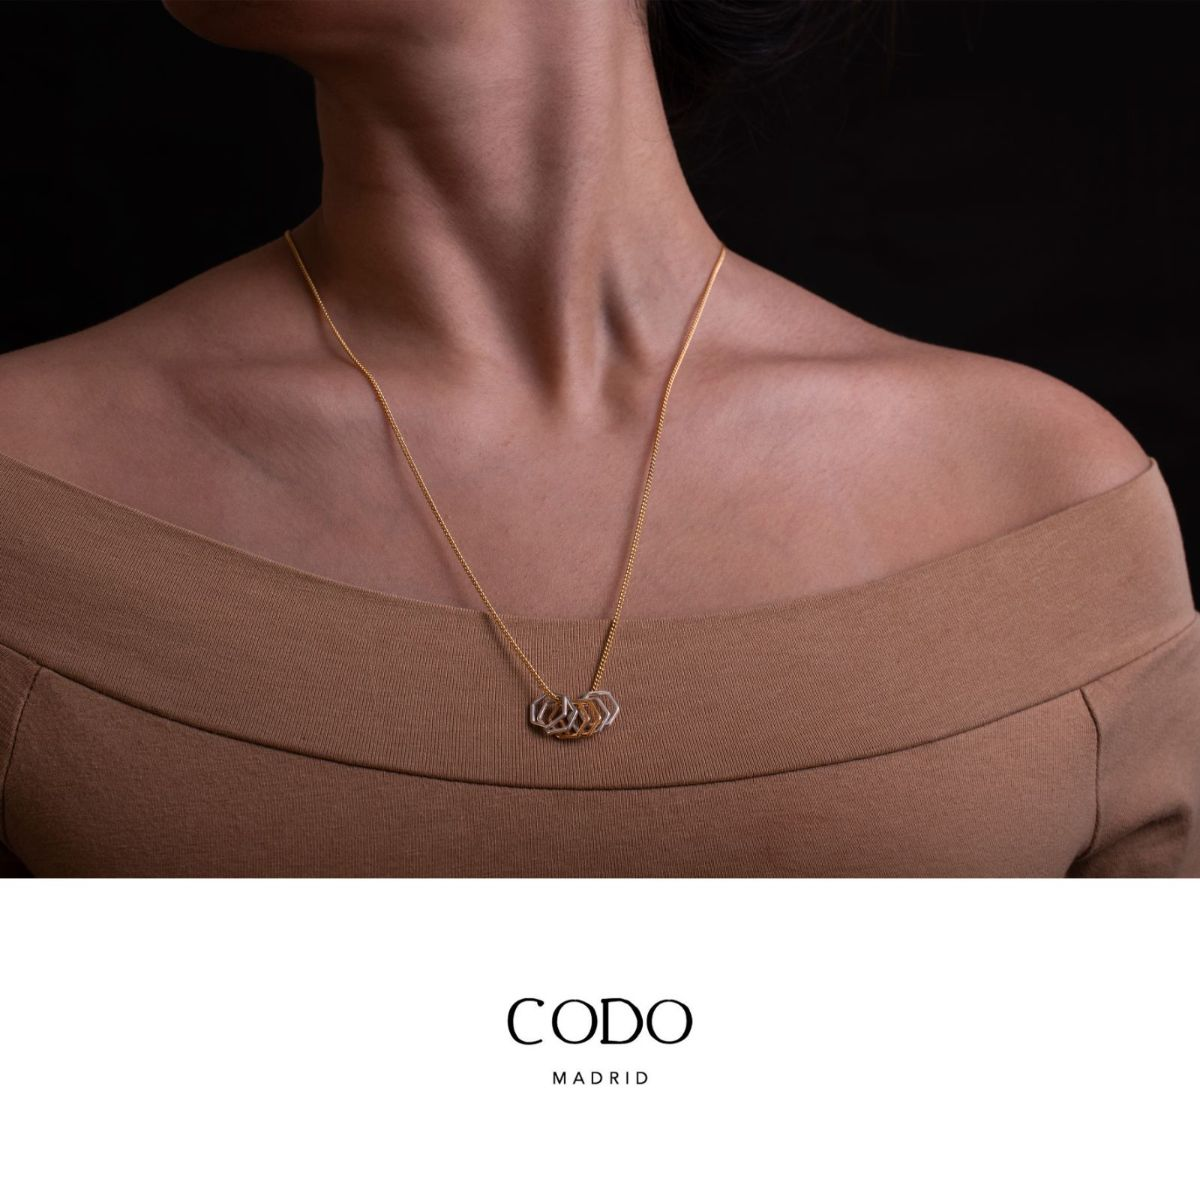 Dusk long necklace of fine metal chain with silver and gold hexagons